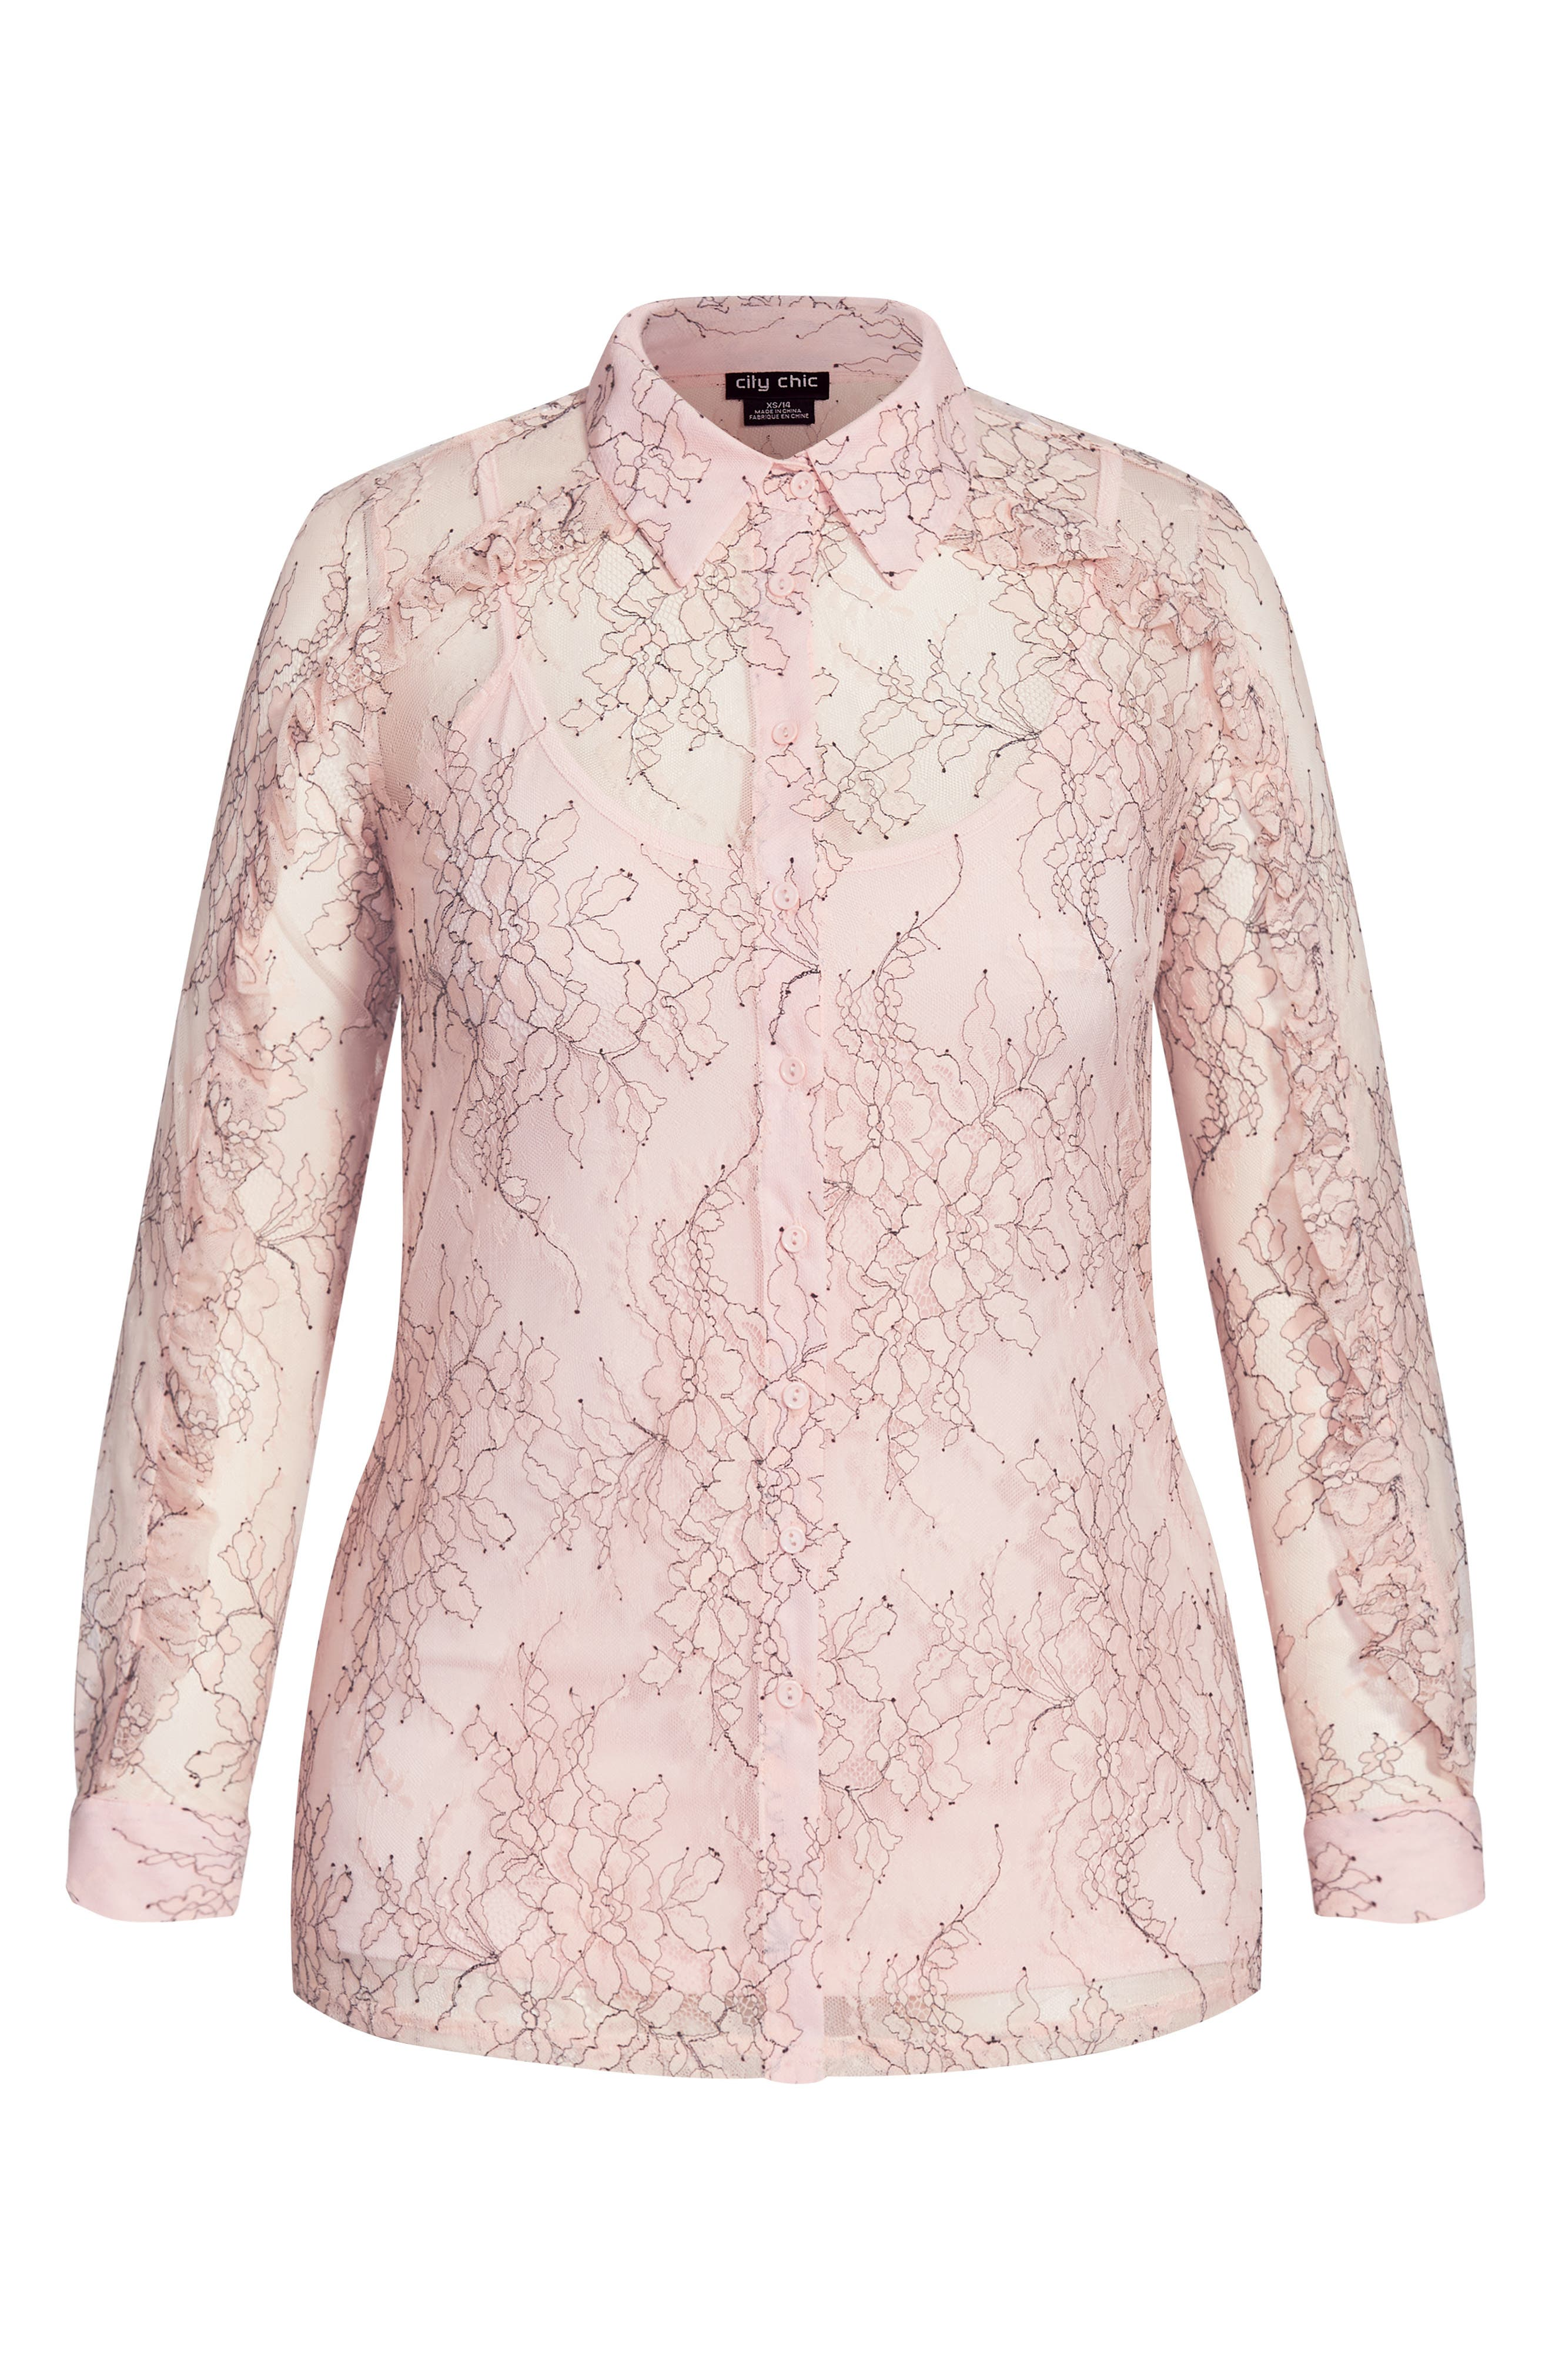 Ruffled Lace Top